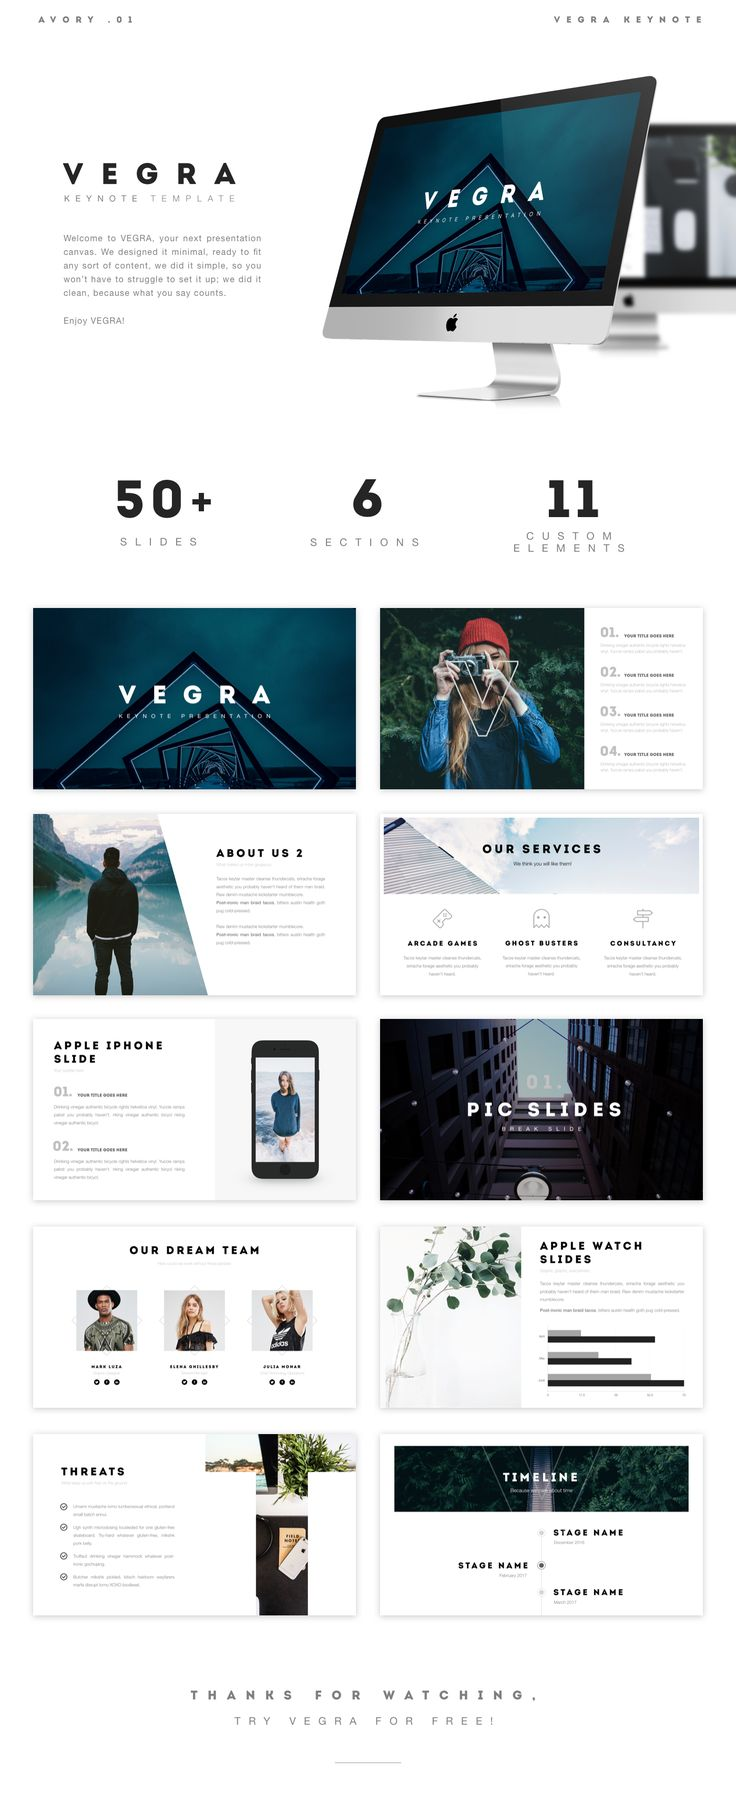 Welcome to VEGRA, your next presentation canvas. We designed it minimal, ready to fit any sort of content, we did it simple, so you won't have to struggle to set it up; we did it clean, so that your content truly shines.